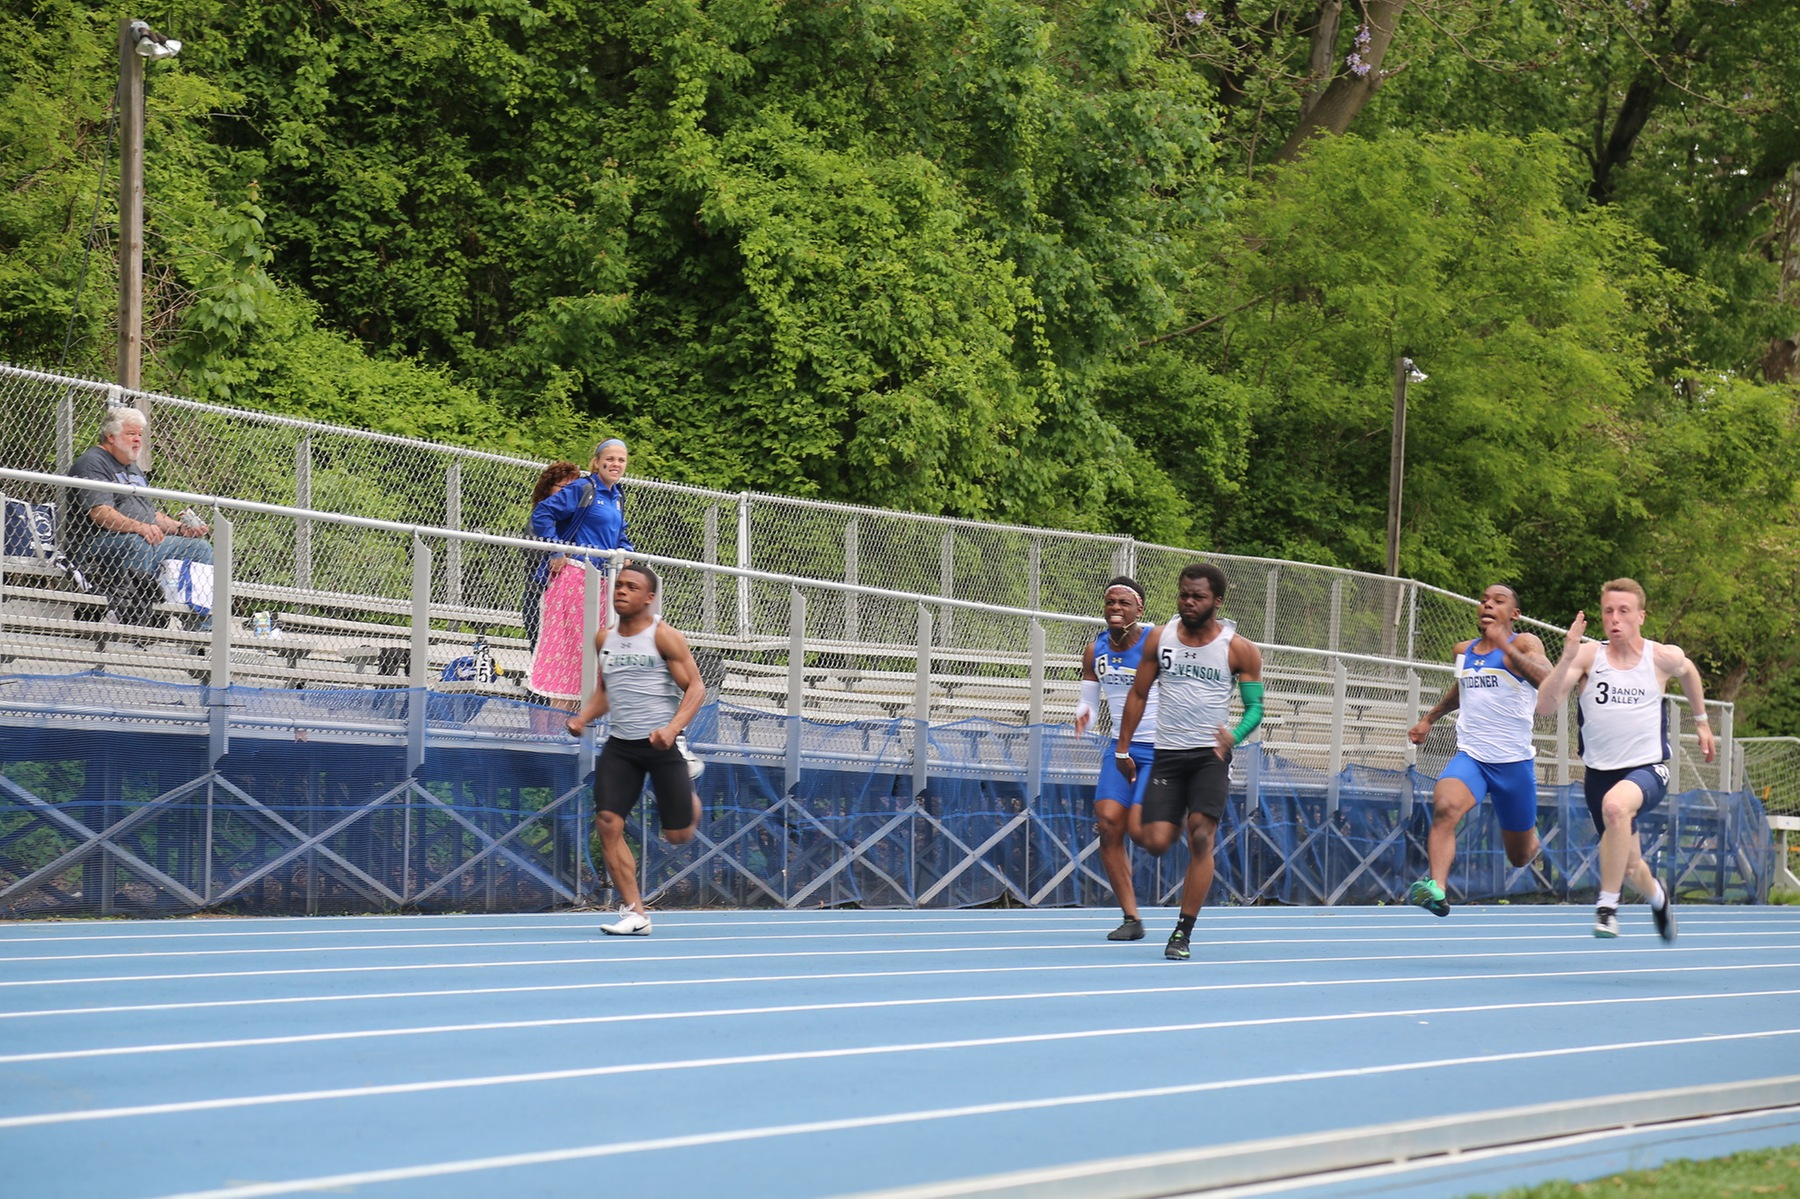 Davis, Belser Finish One-Two in 100 Prelims at AARTFC Championship